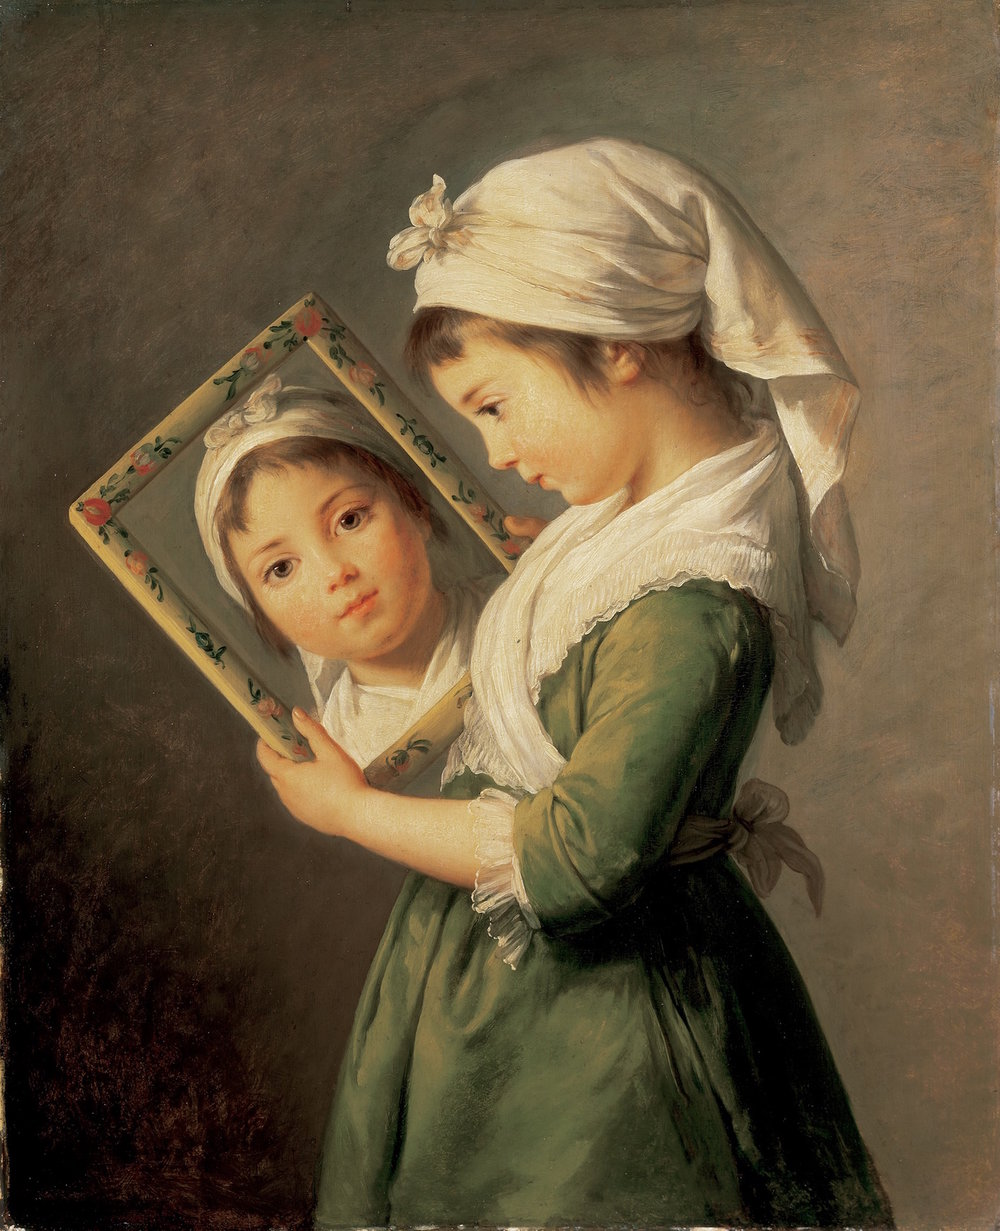 """Julie Le Brun looking in a mirror"" by her mother, Elisabeth Vigée Le Brun"